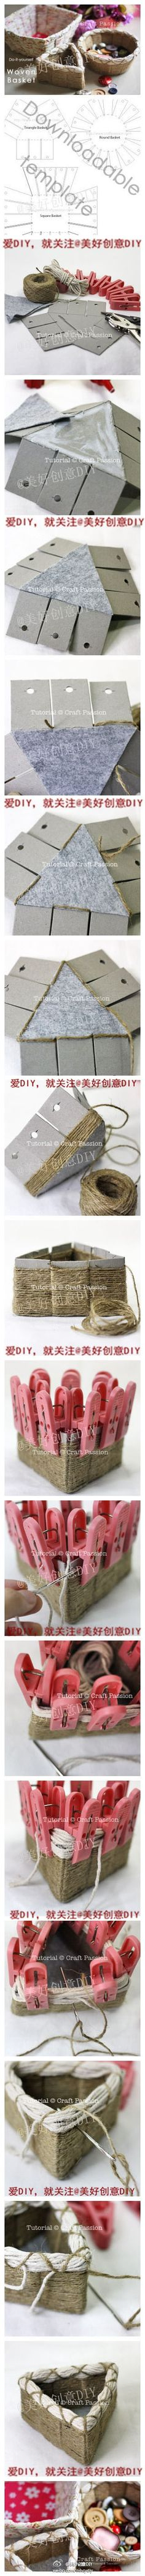 "DIY ""Woven"" Baskets TUTORIAL recycled cardboard, twine"